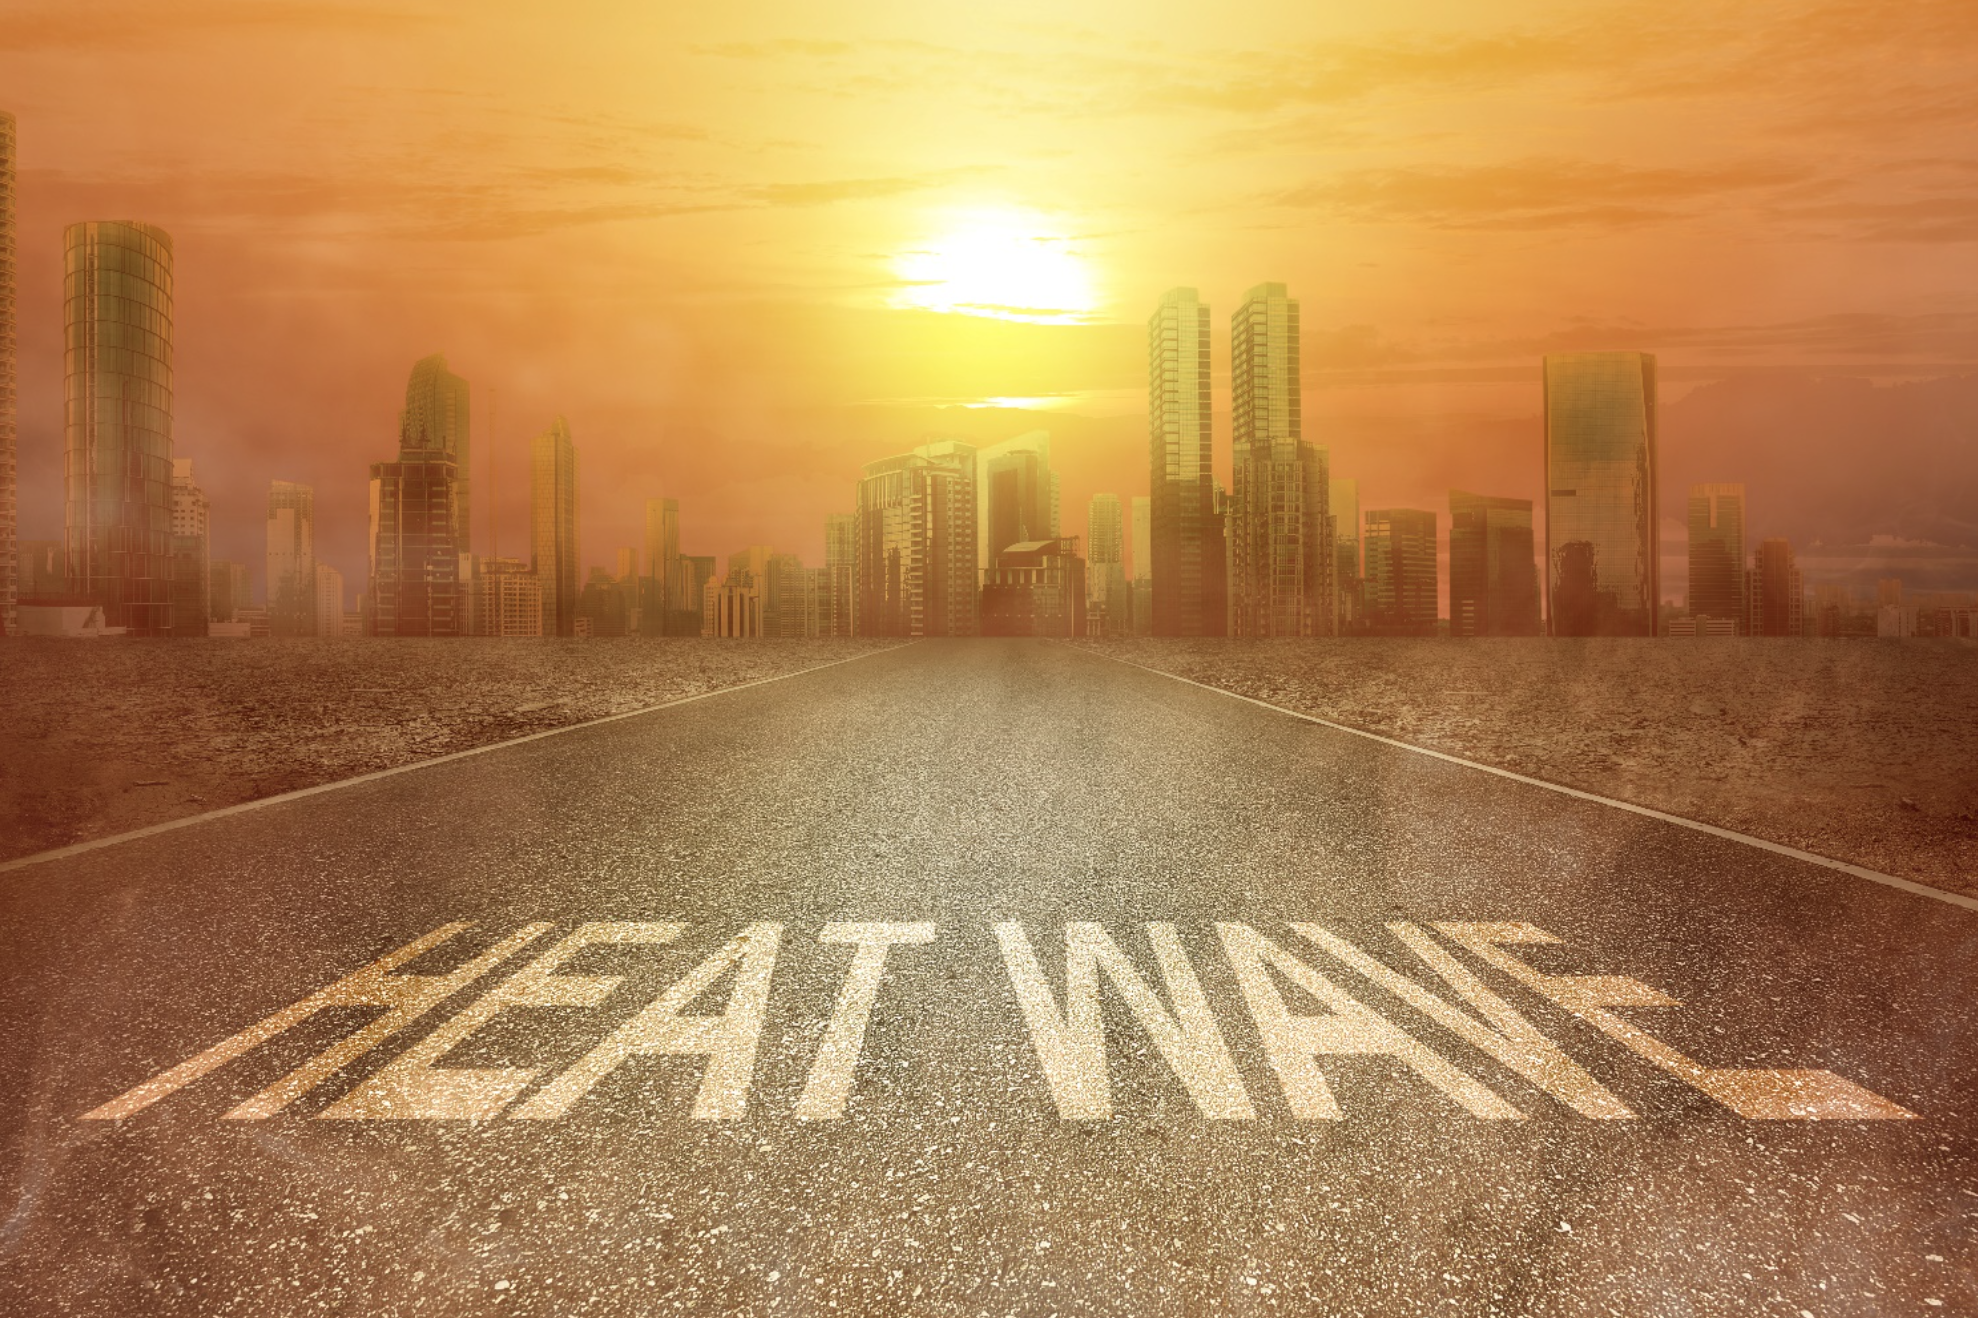 What is the most effective way to reduce the temperature and energy consumption in your city?